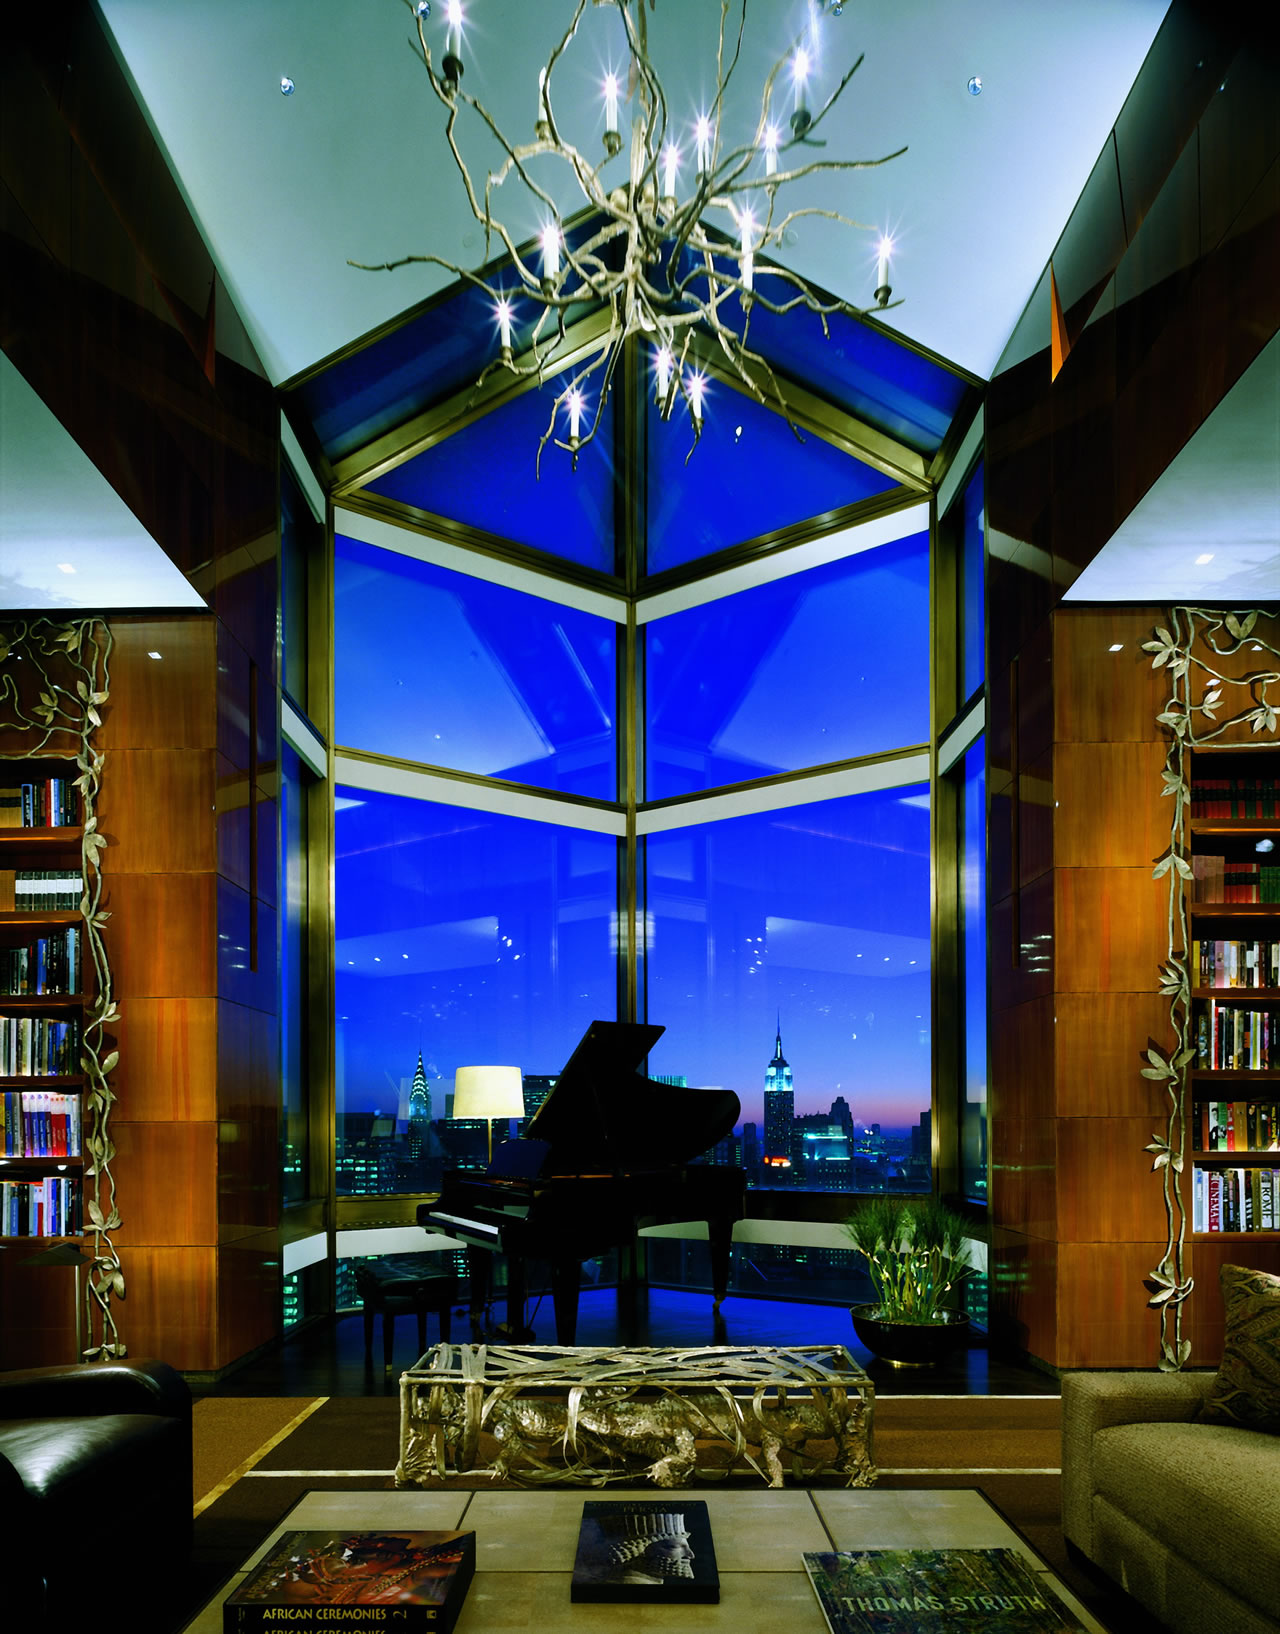 Top 10 most expensive hotel suites in the world 2011 the for The most expensive hotel in the world